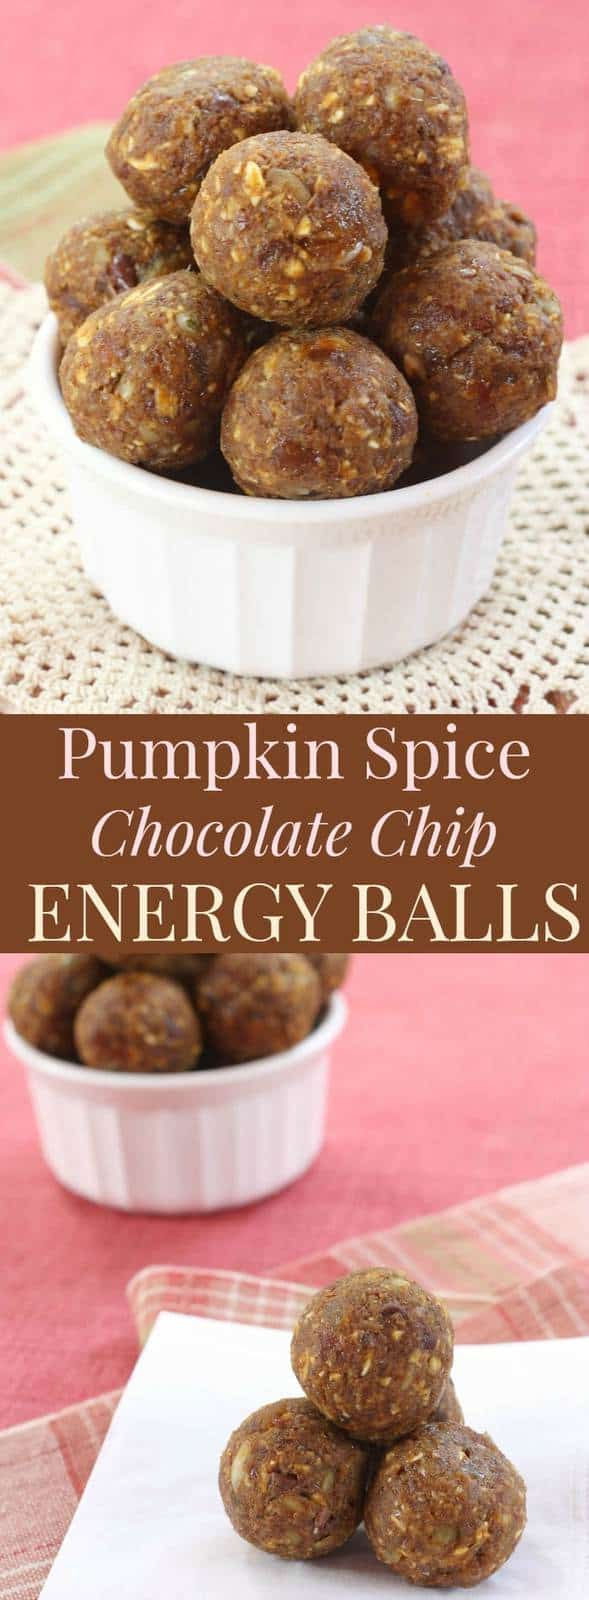 Pumpkin Spice Chocolate Chip Energy Balls - quick, easy, healthy snacks! Options to make gluten free, diary free, nut free, and vegan. | cupcakesandkalechips.com